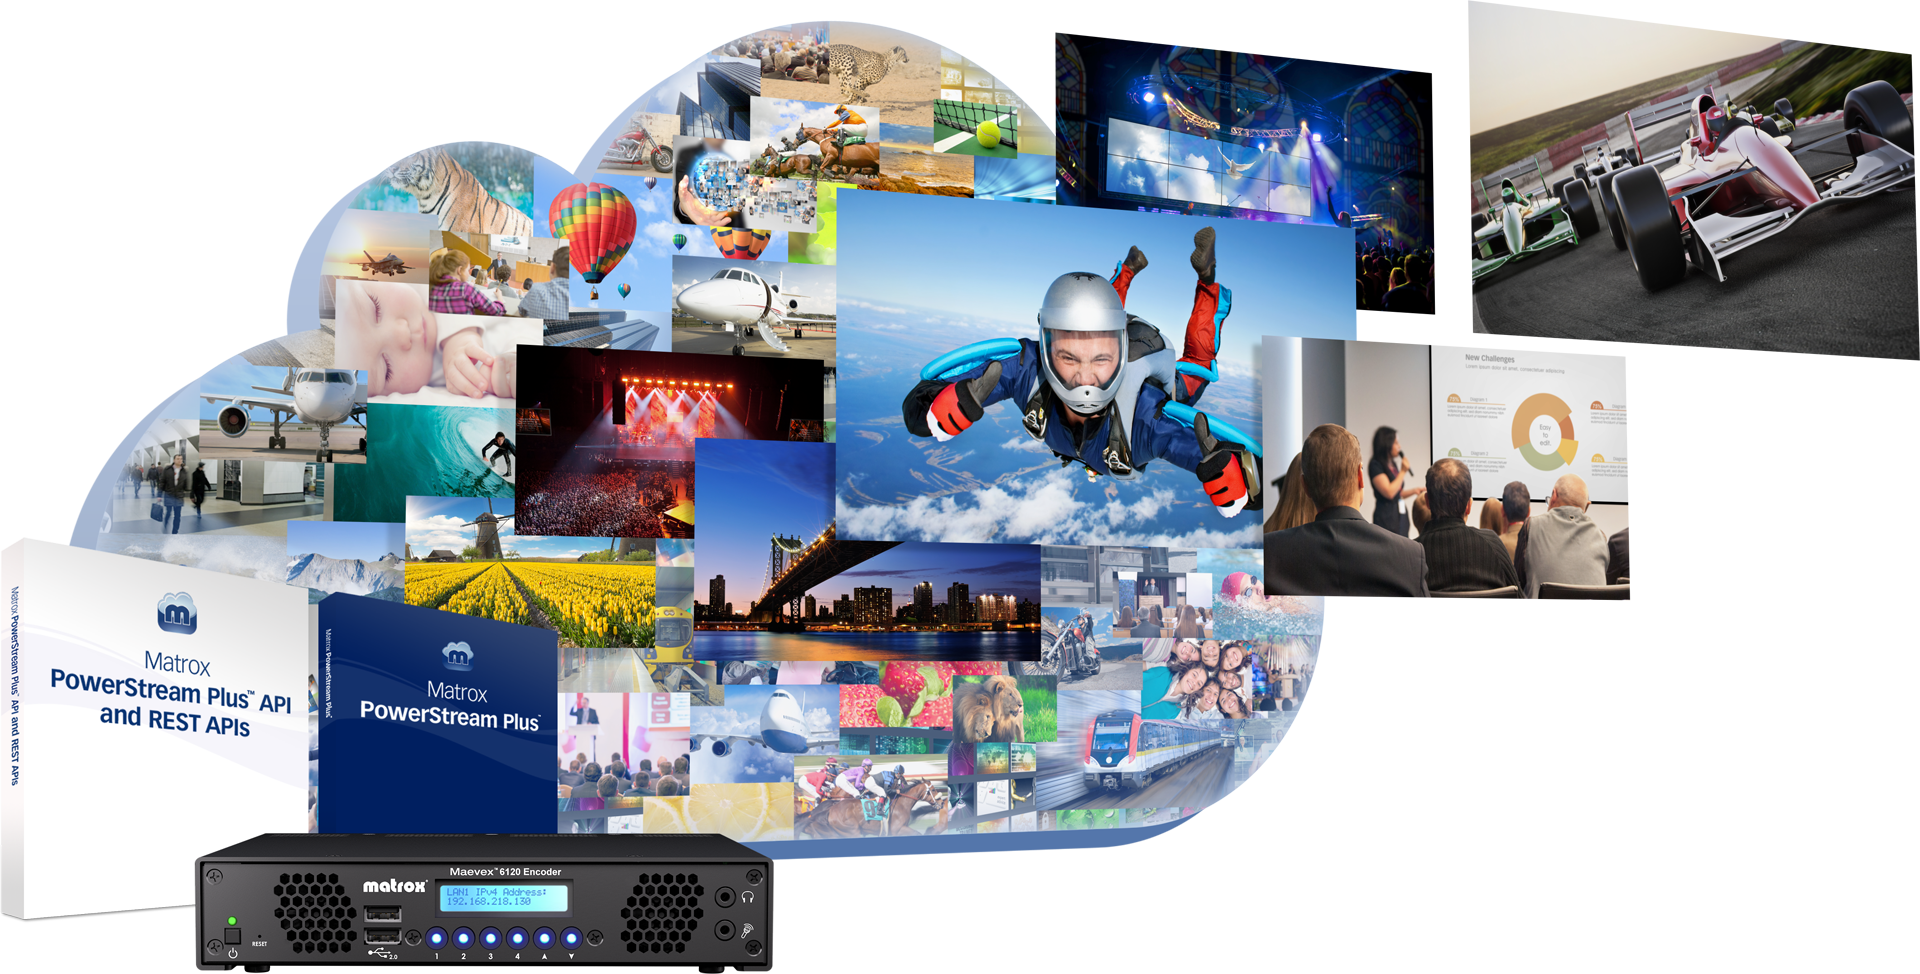 Maevex 6120 and PowerStream Plus Cloud Computing